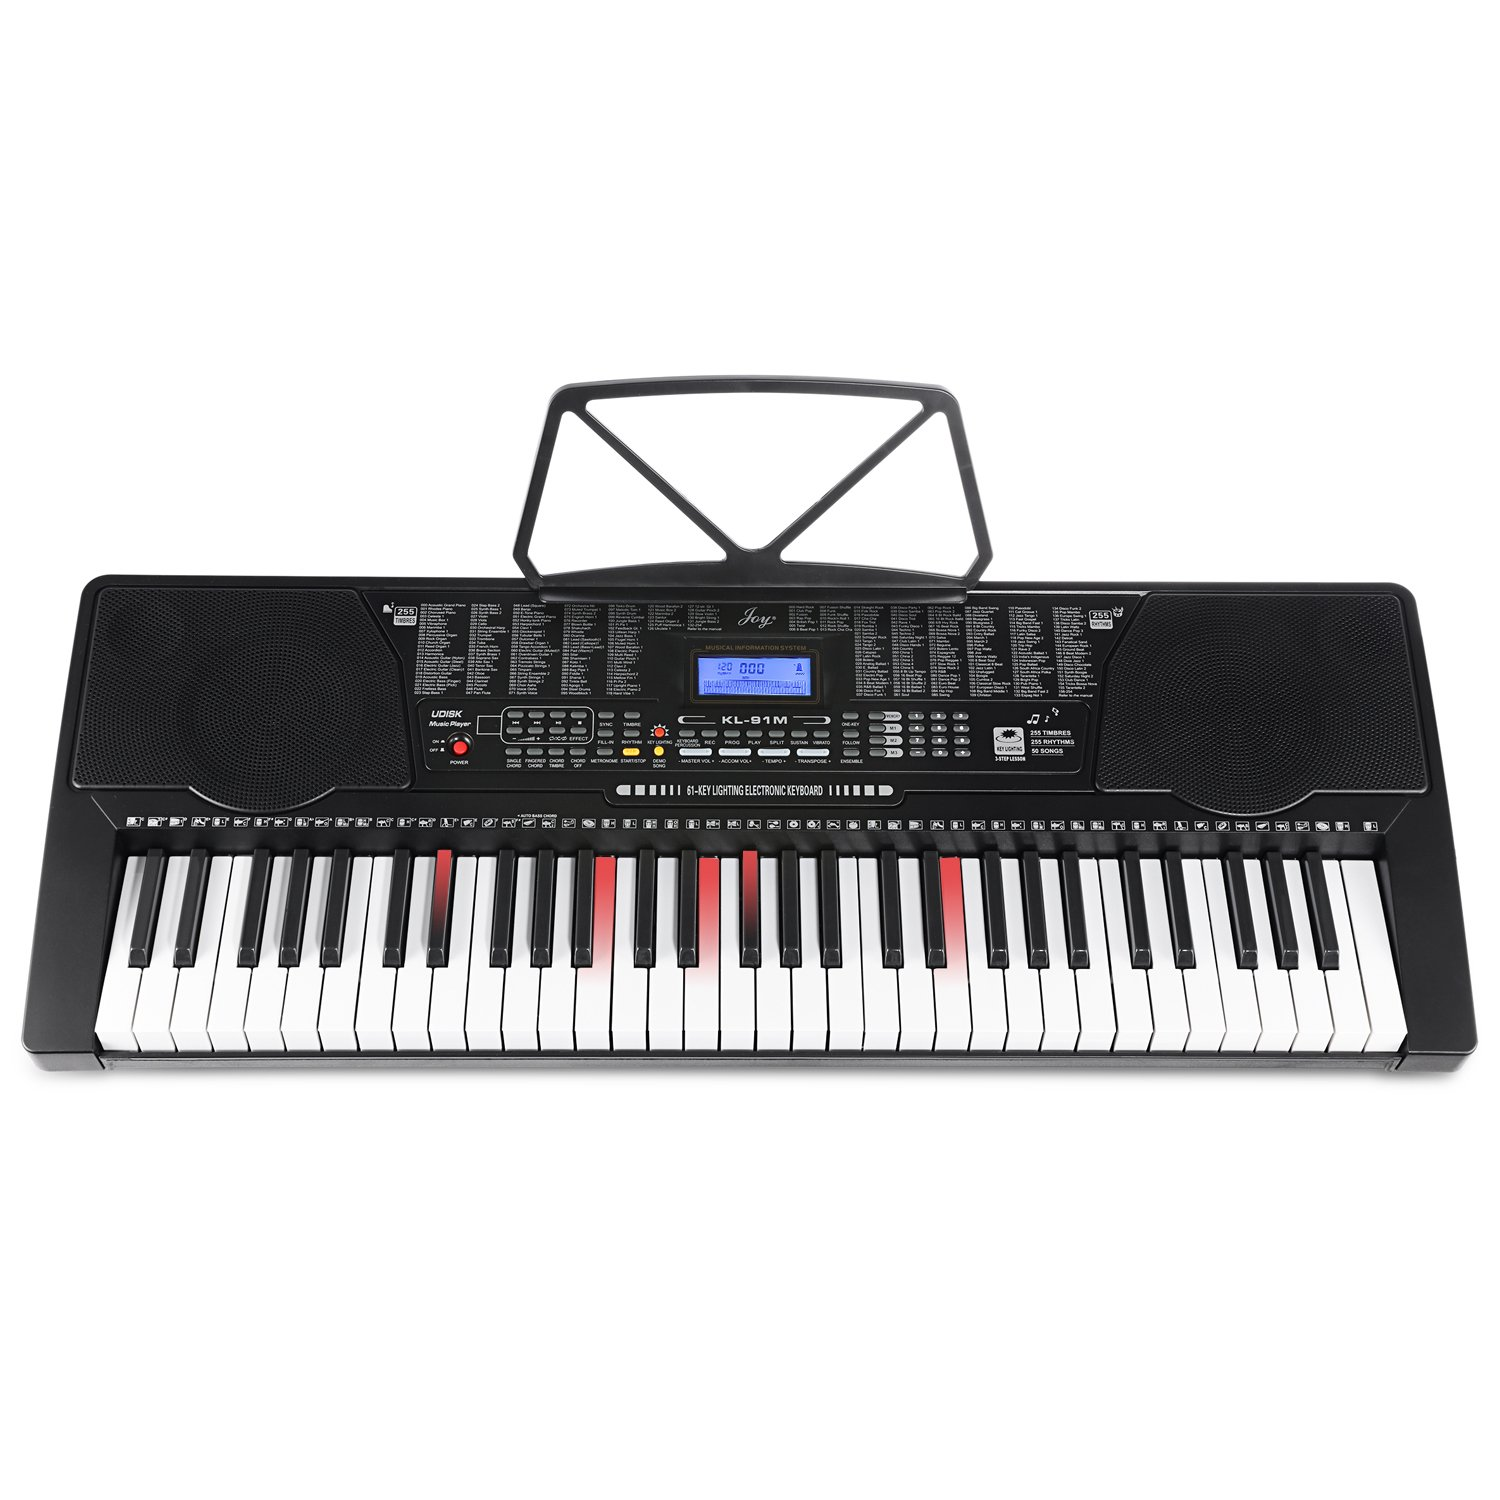 Joy KL-91M With USB & 61 Lighted Keys Simulation Piano Keyboard Starter Pack Including Headphone, Stand, Stool and Power Supply CHINA JOY KEYBOARDS CO. LTD KL-91M-KIT